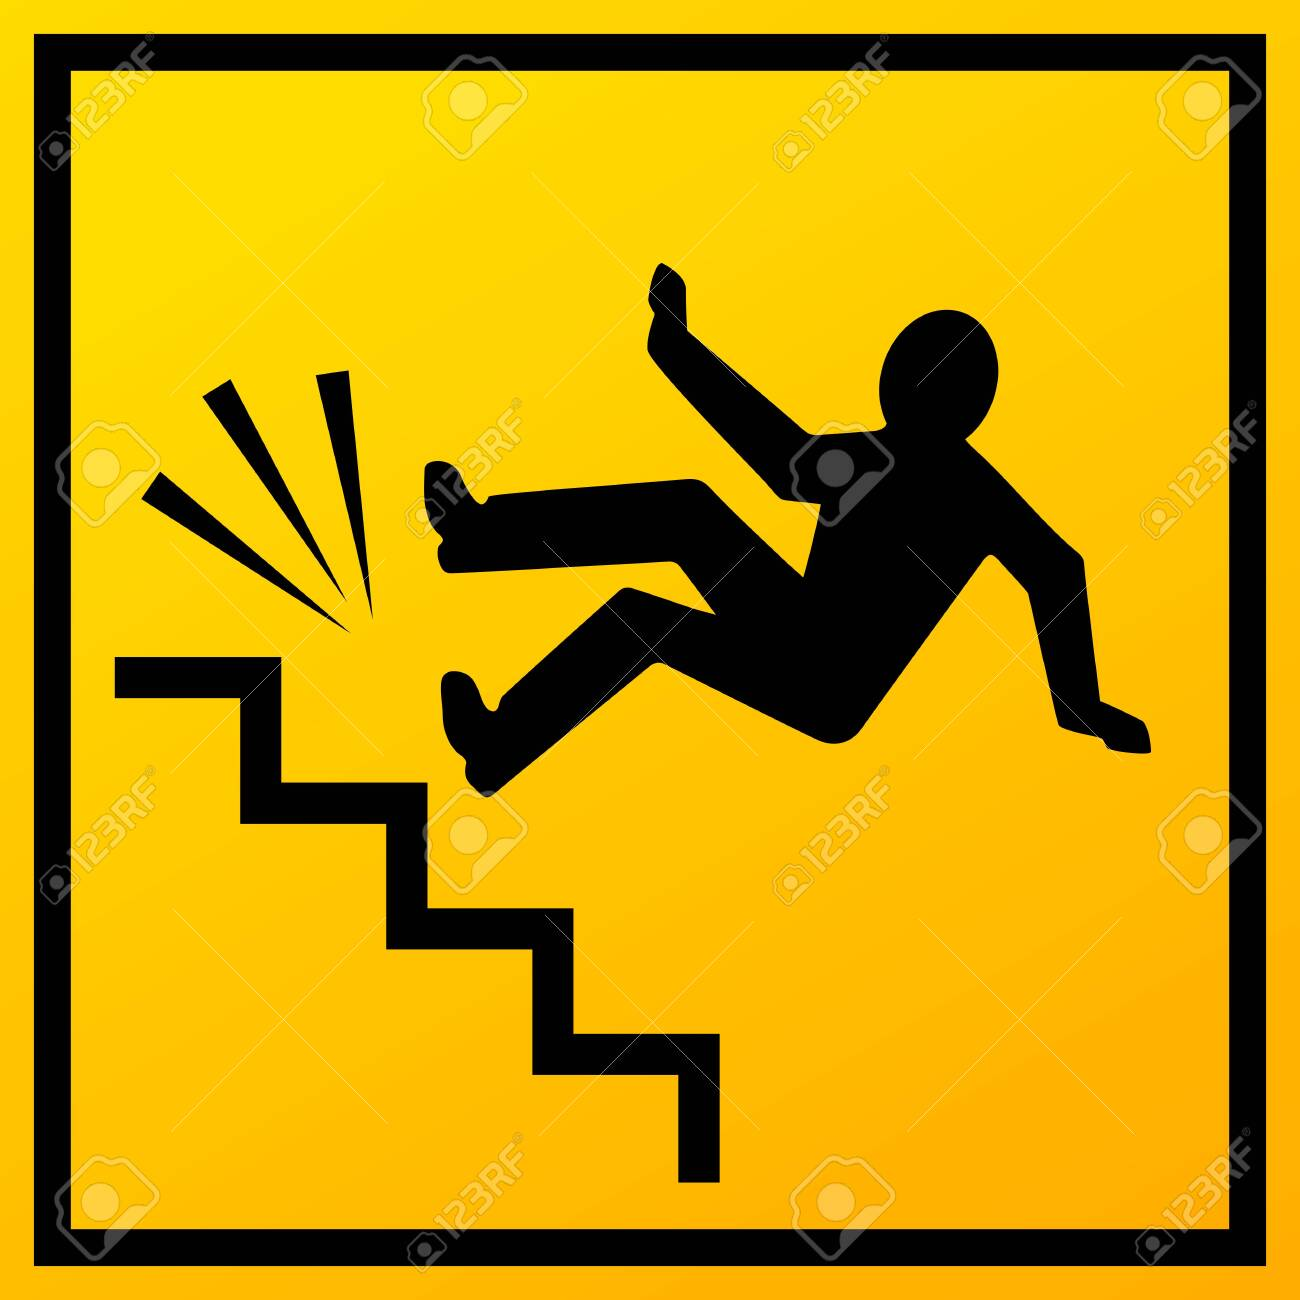 Stairs fall vector sign on white background - 124057340